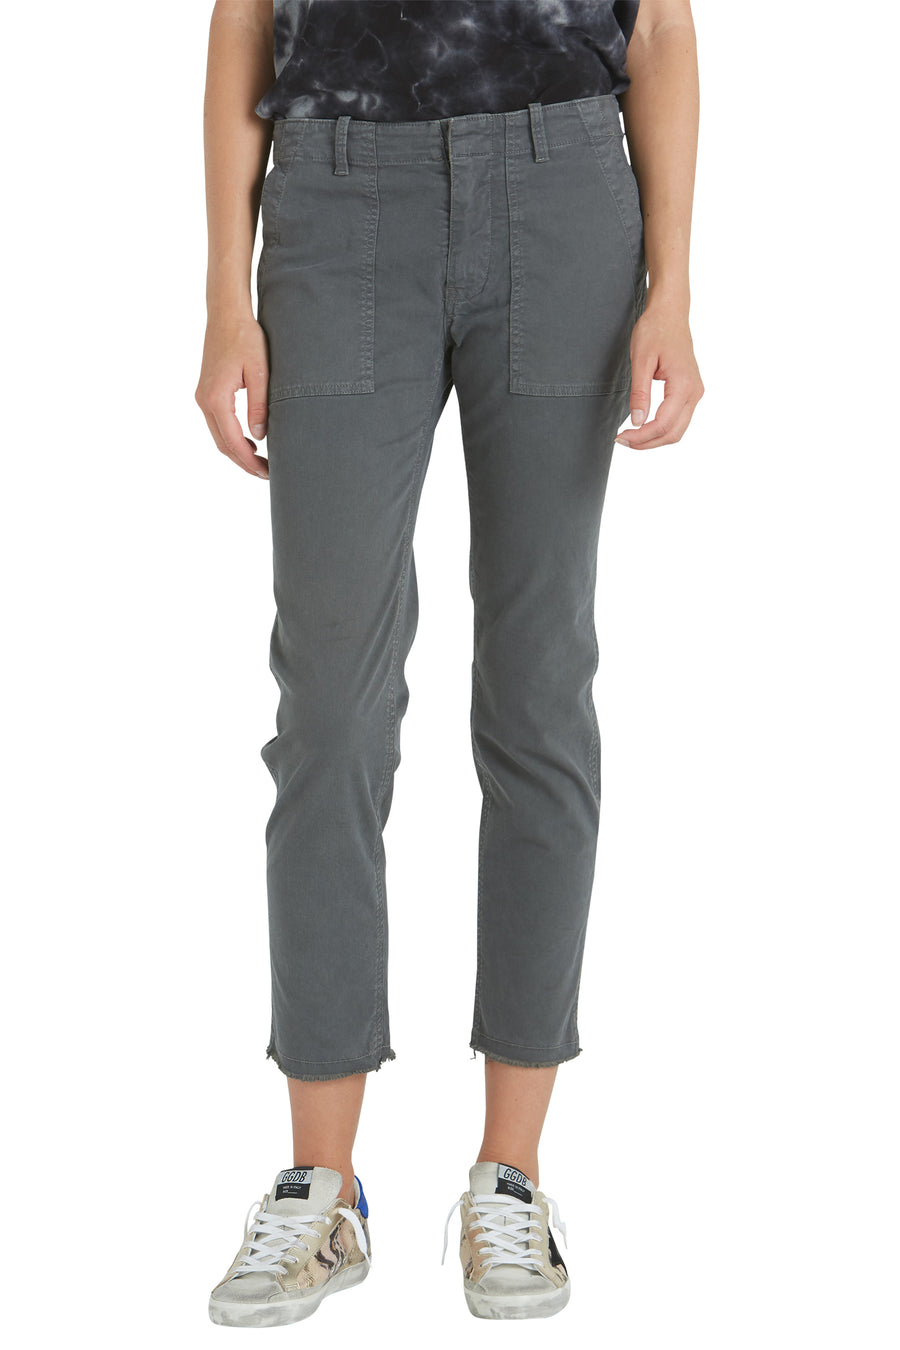 Nili Lotan Jenna Pant in Charcoal from The New Trend